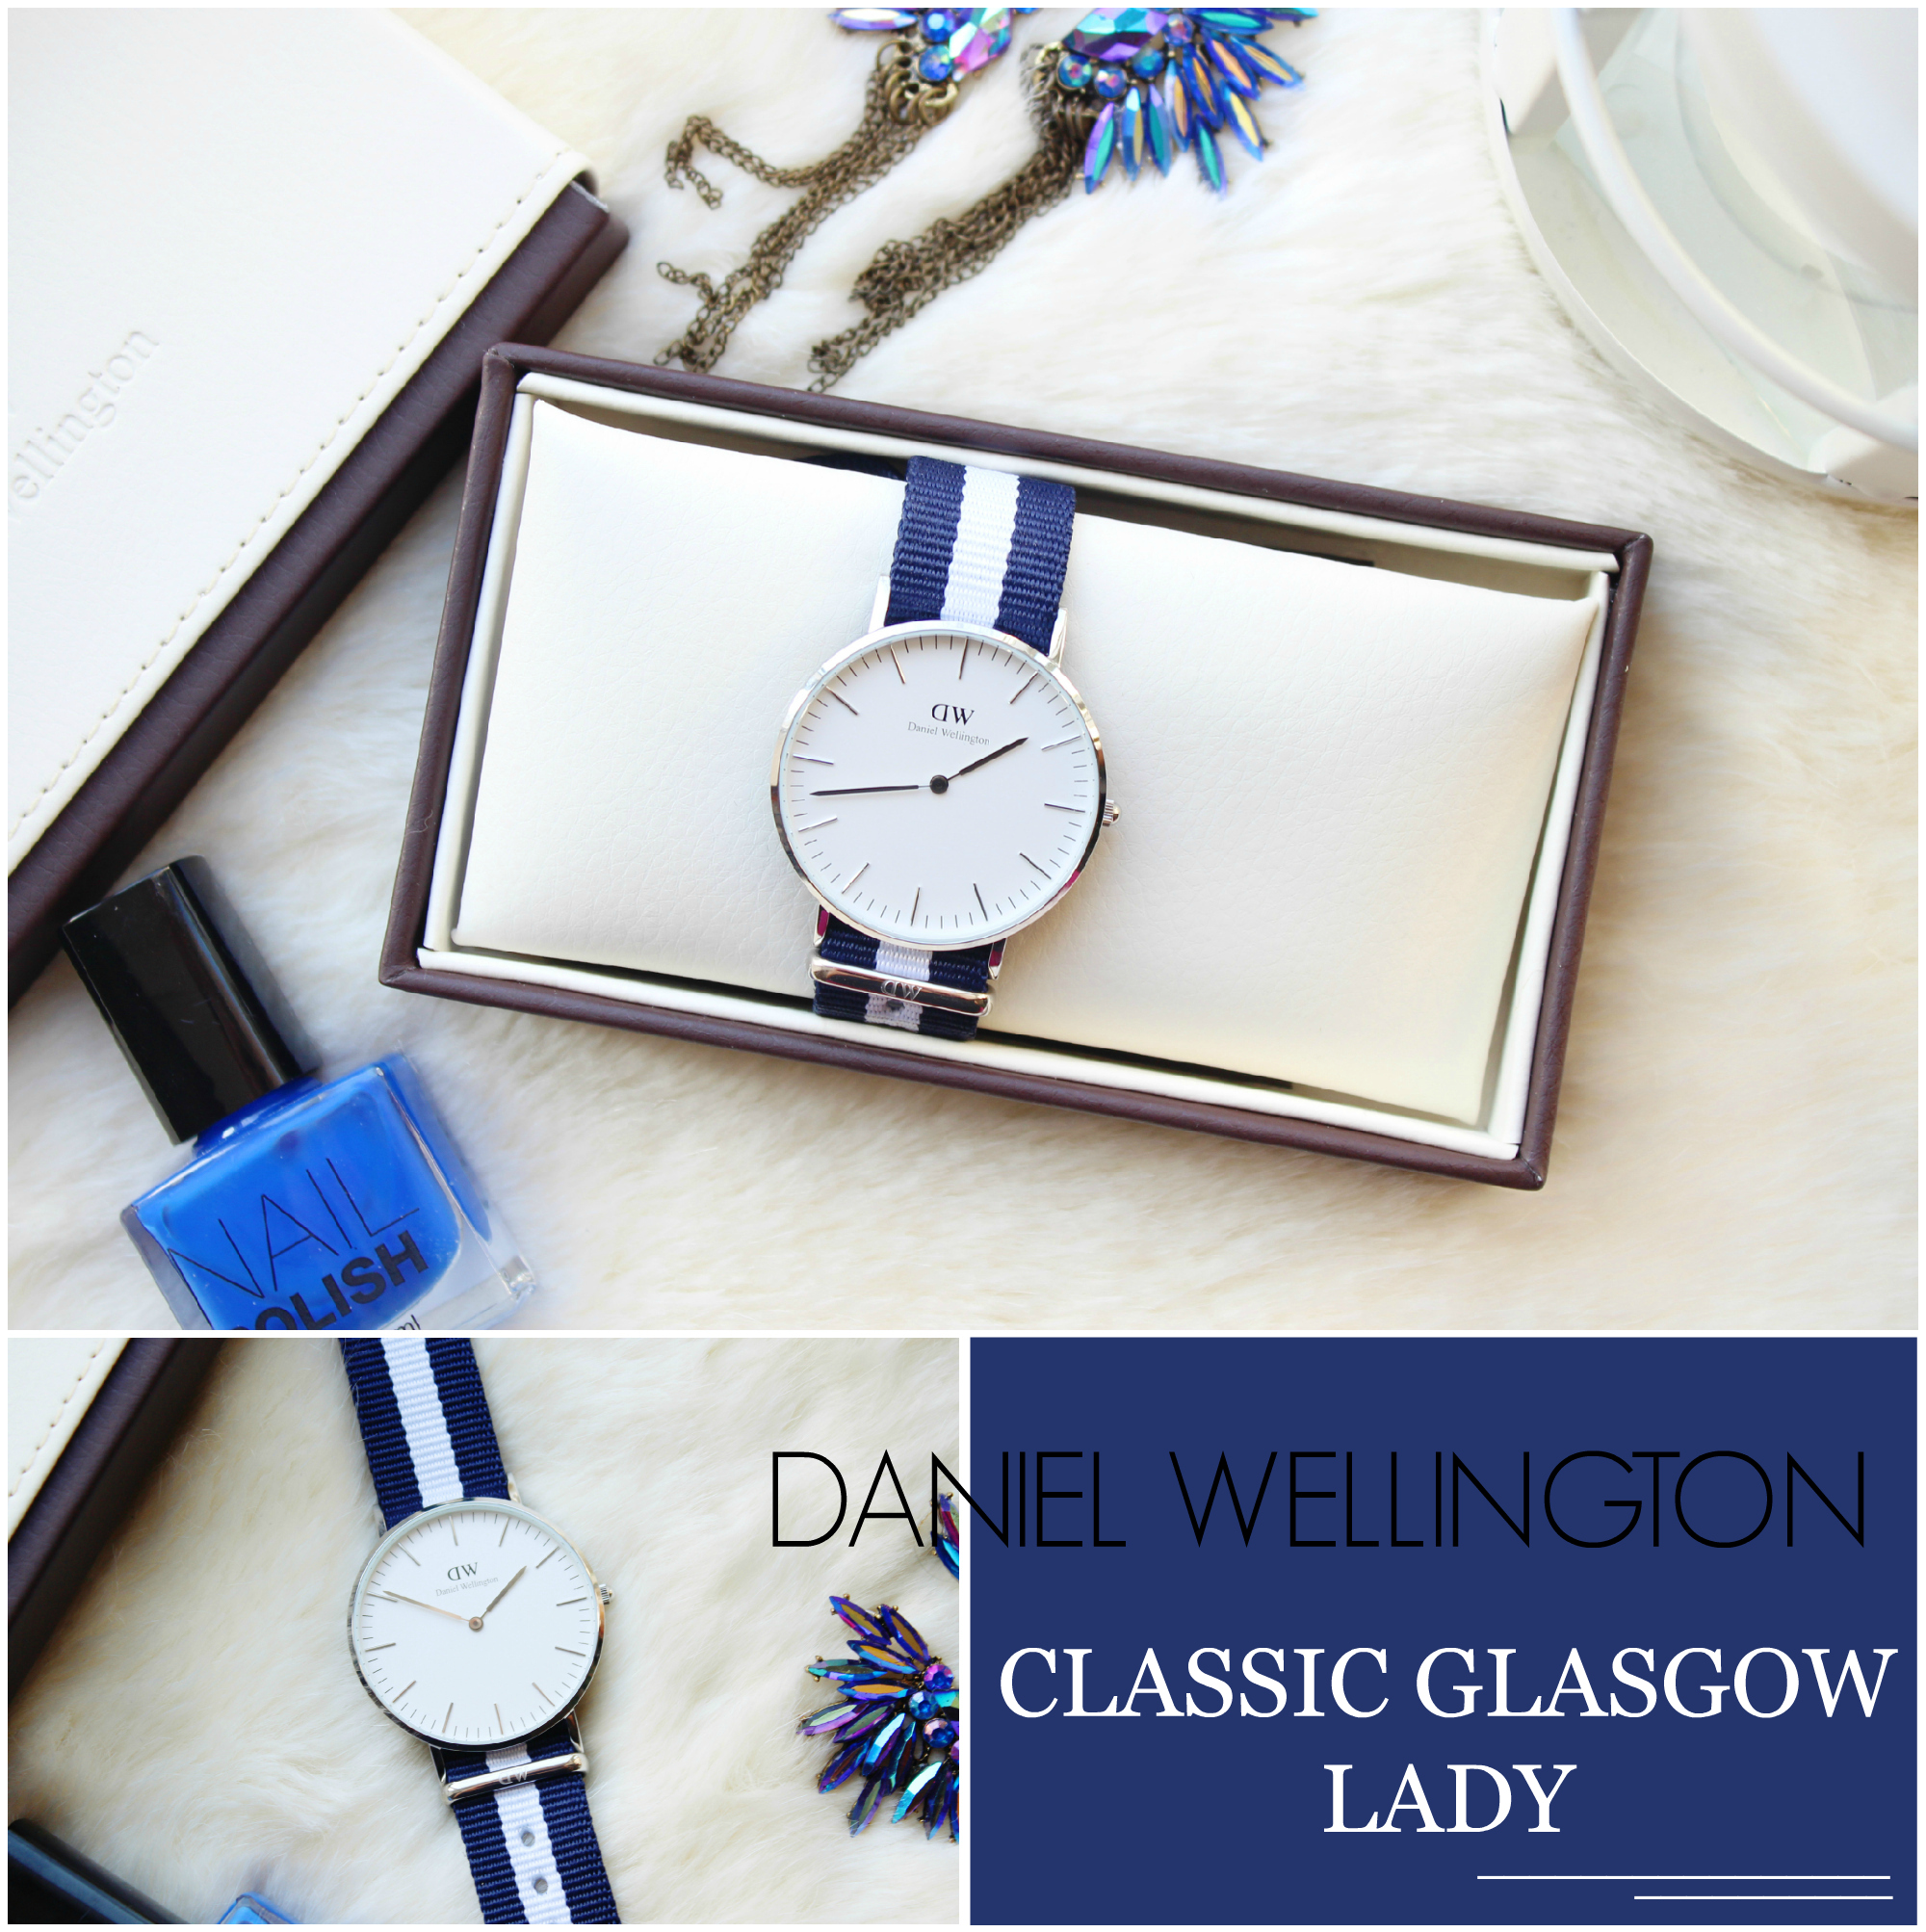 daniel-wellington-classic-glasgow-lady-call-me-maddie